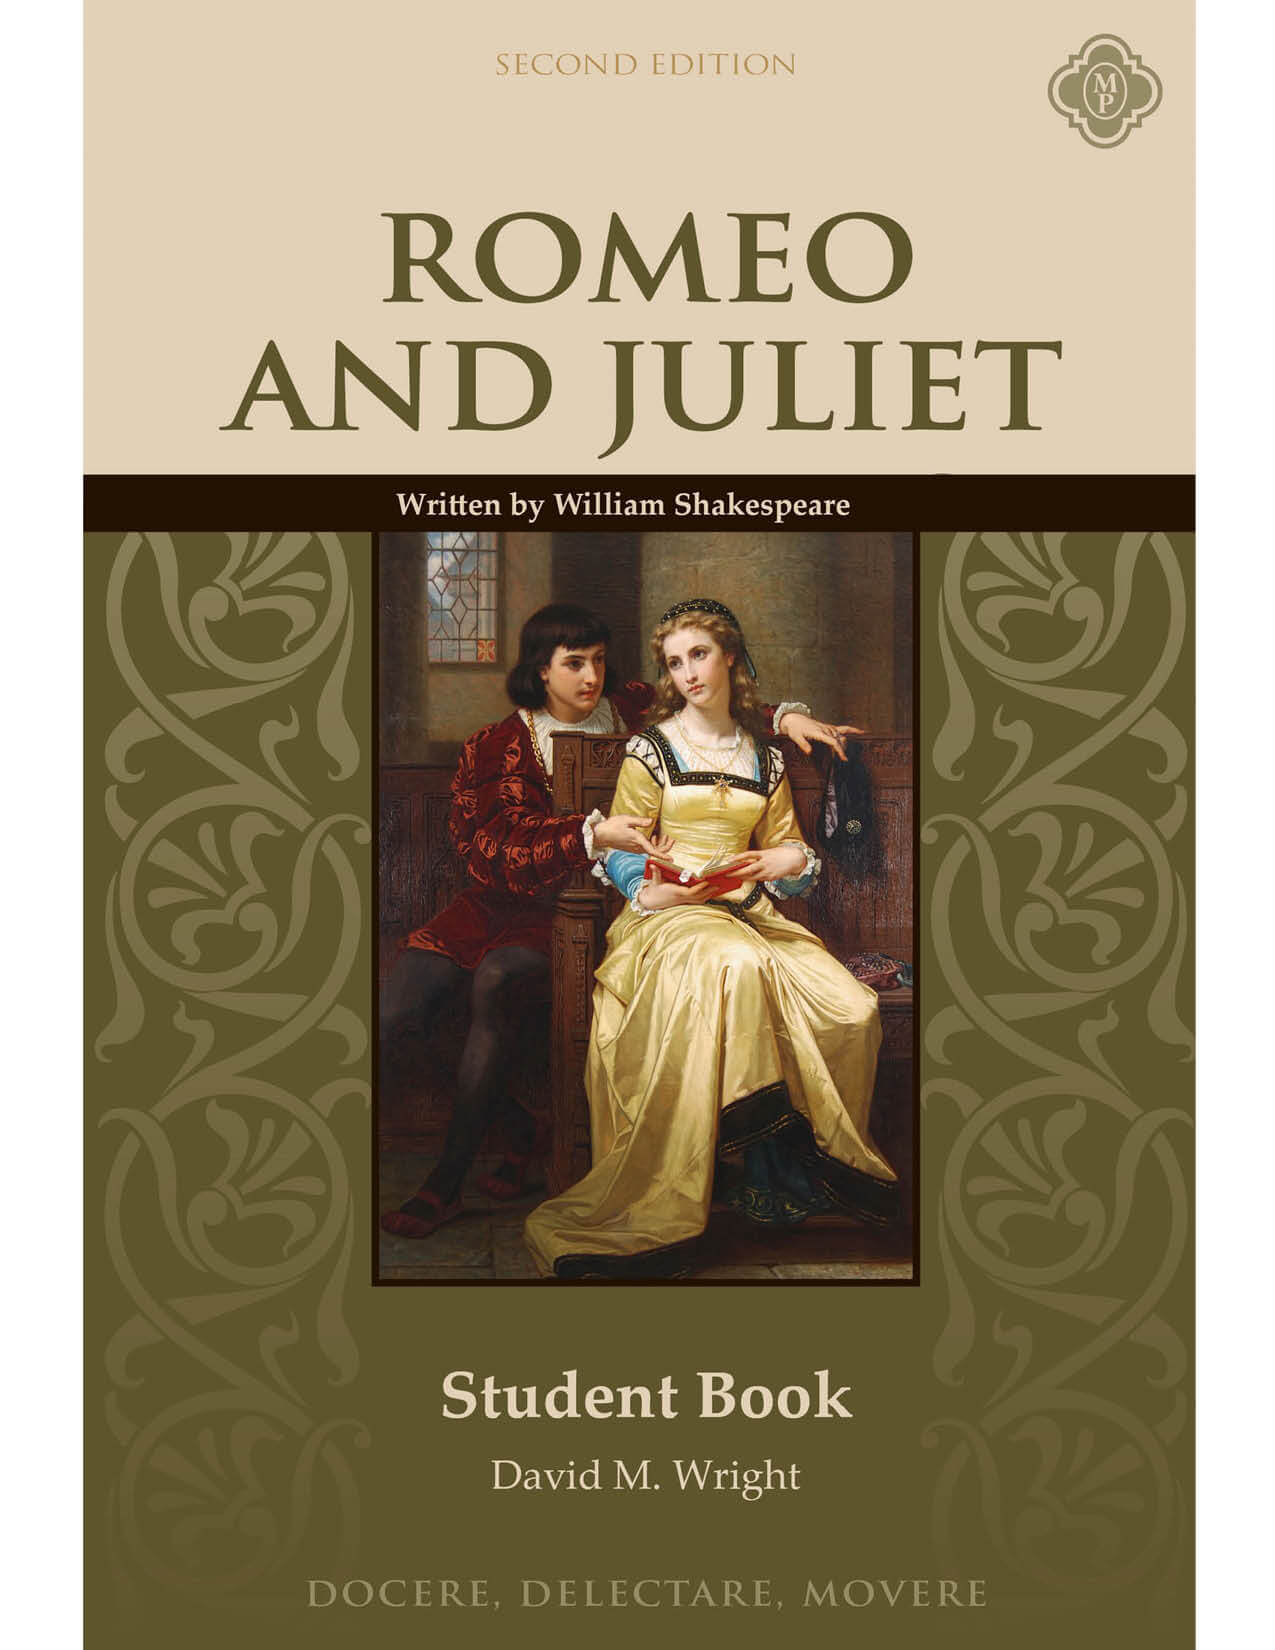 what influenced romeo and juliet to fall in love essay First confession- romeo comes to talk about being in love with juliet (done)   shakespeare demonstrates how someone can fall in love with the idea and looks   william shakespeare provides several of actions and influences that caused.